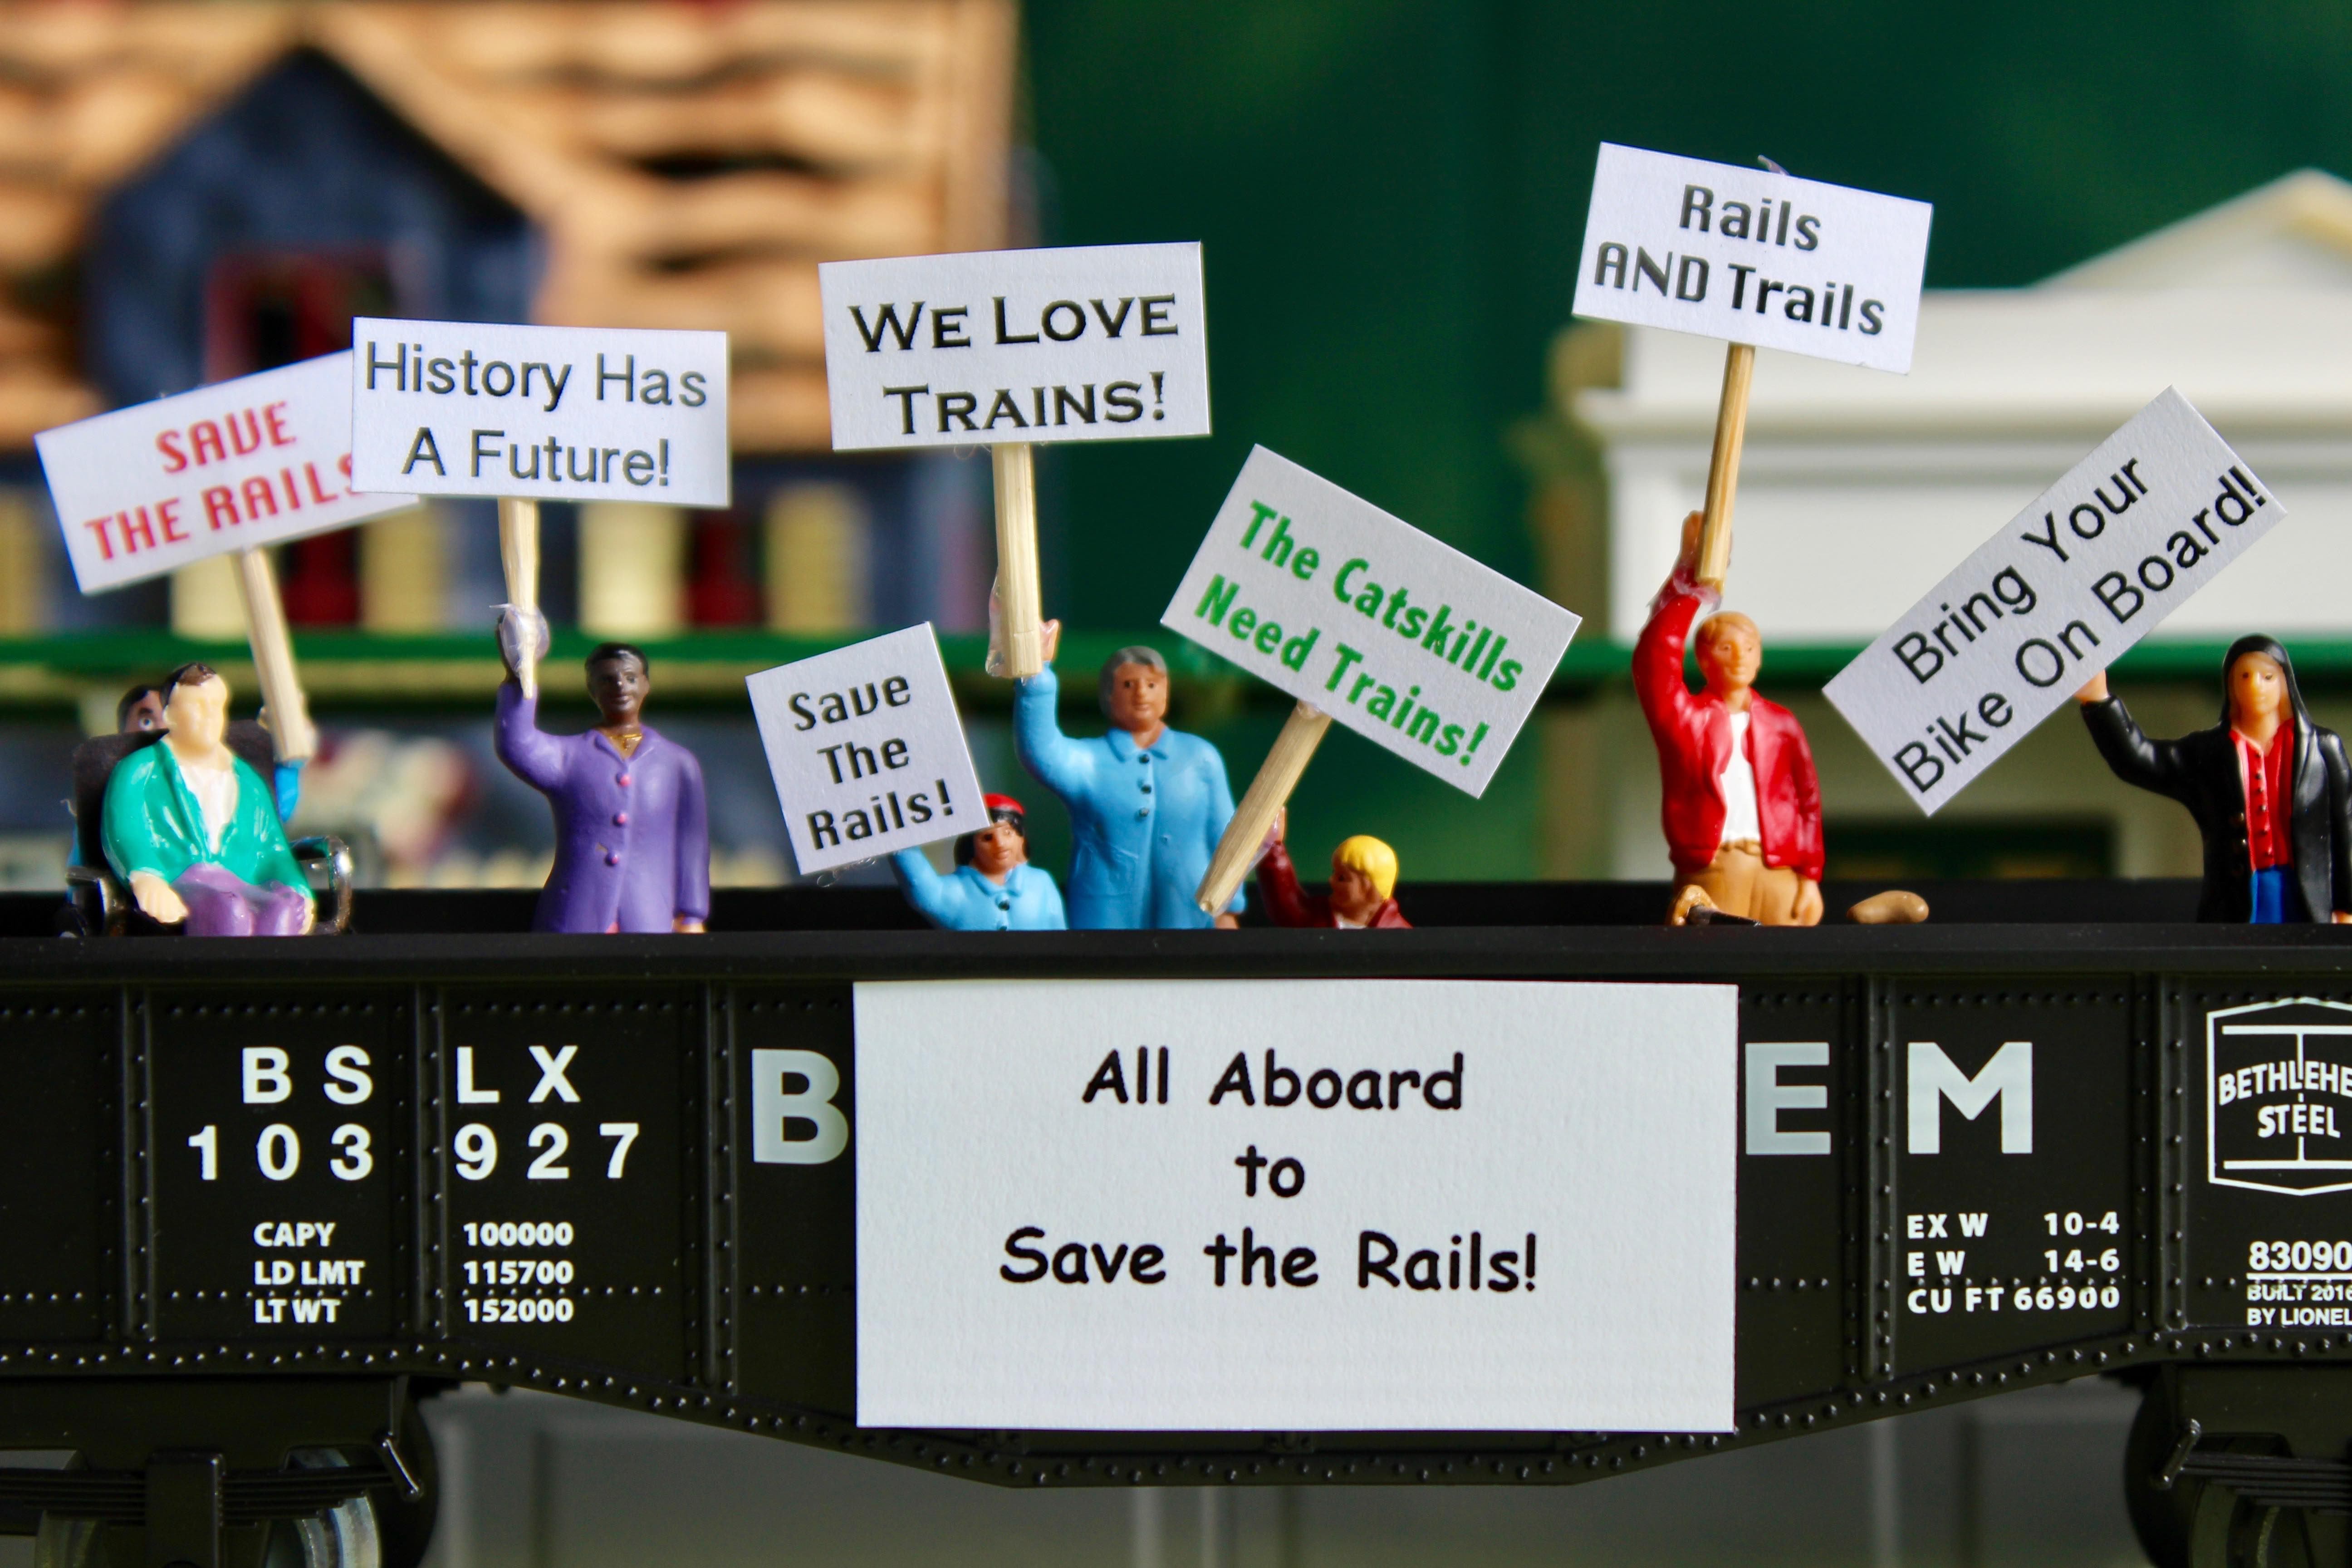 Save the Rails model on display